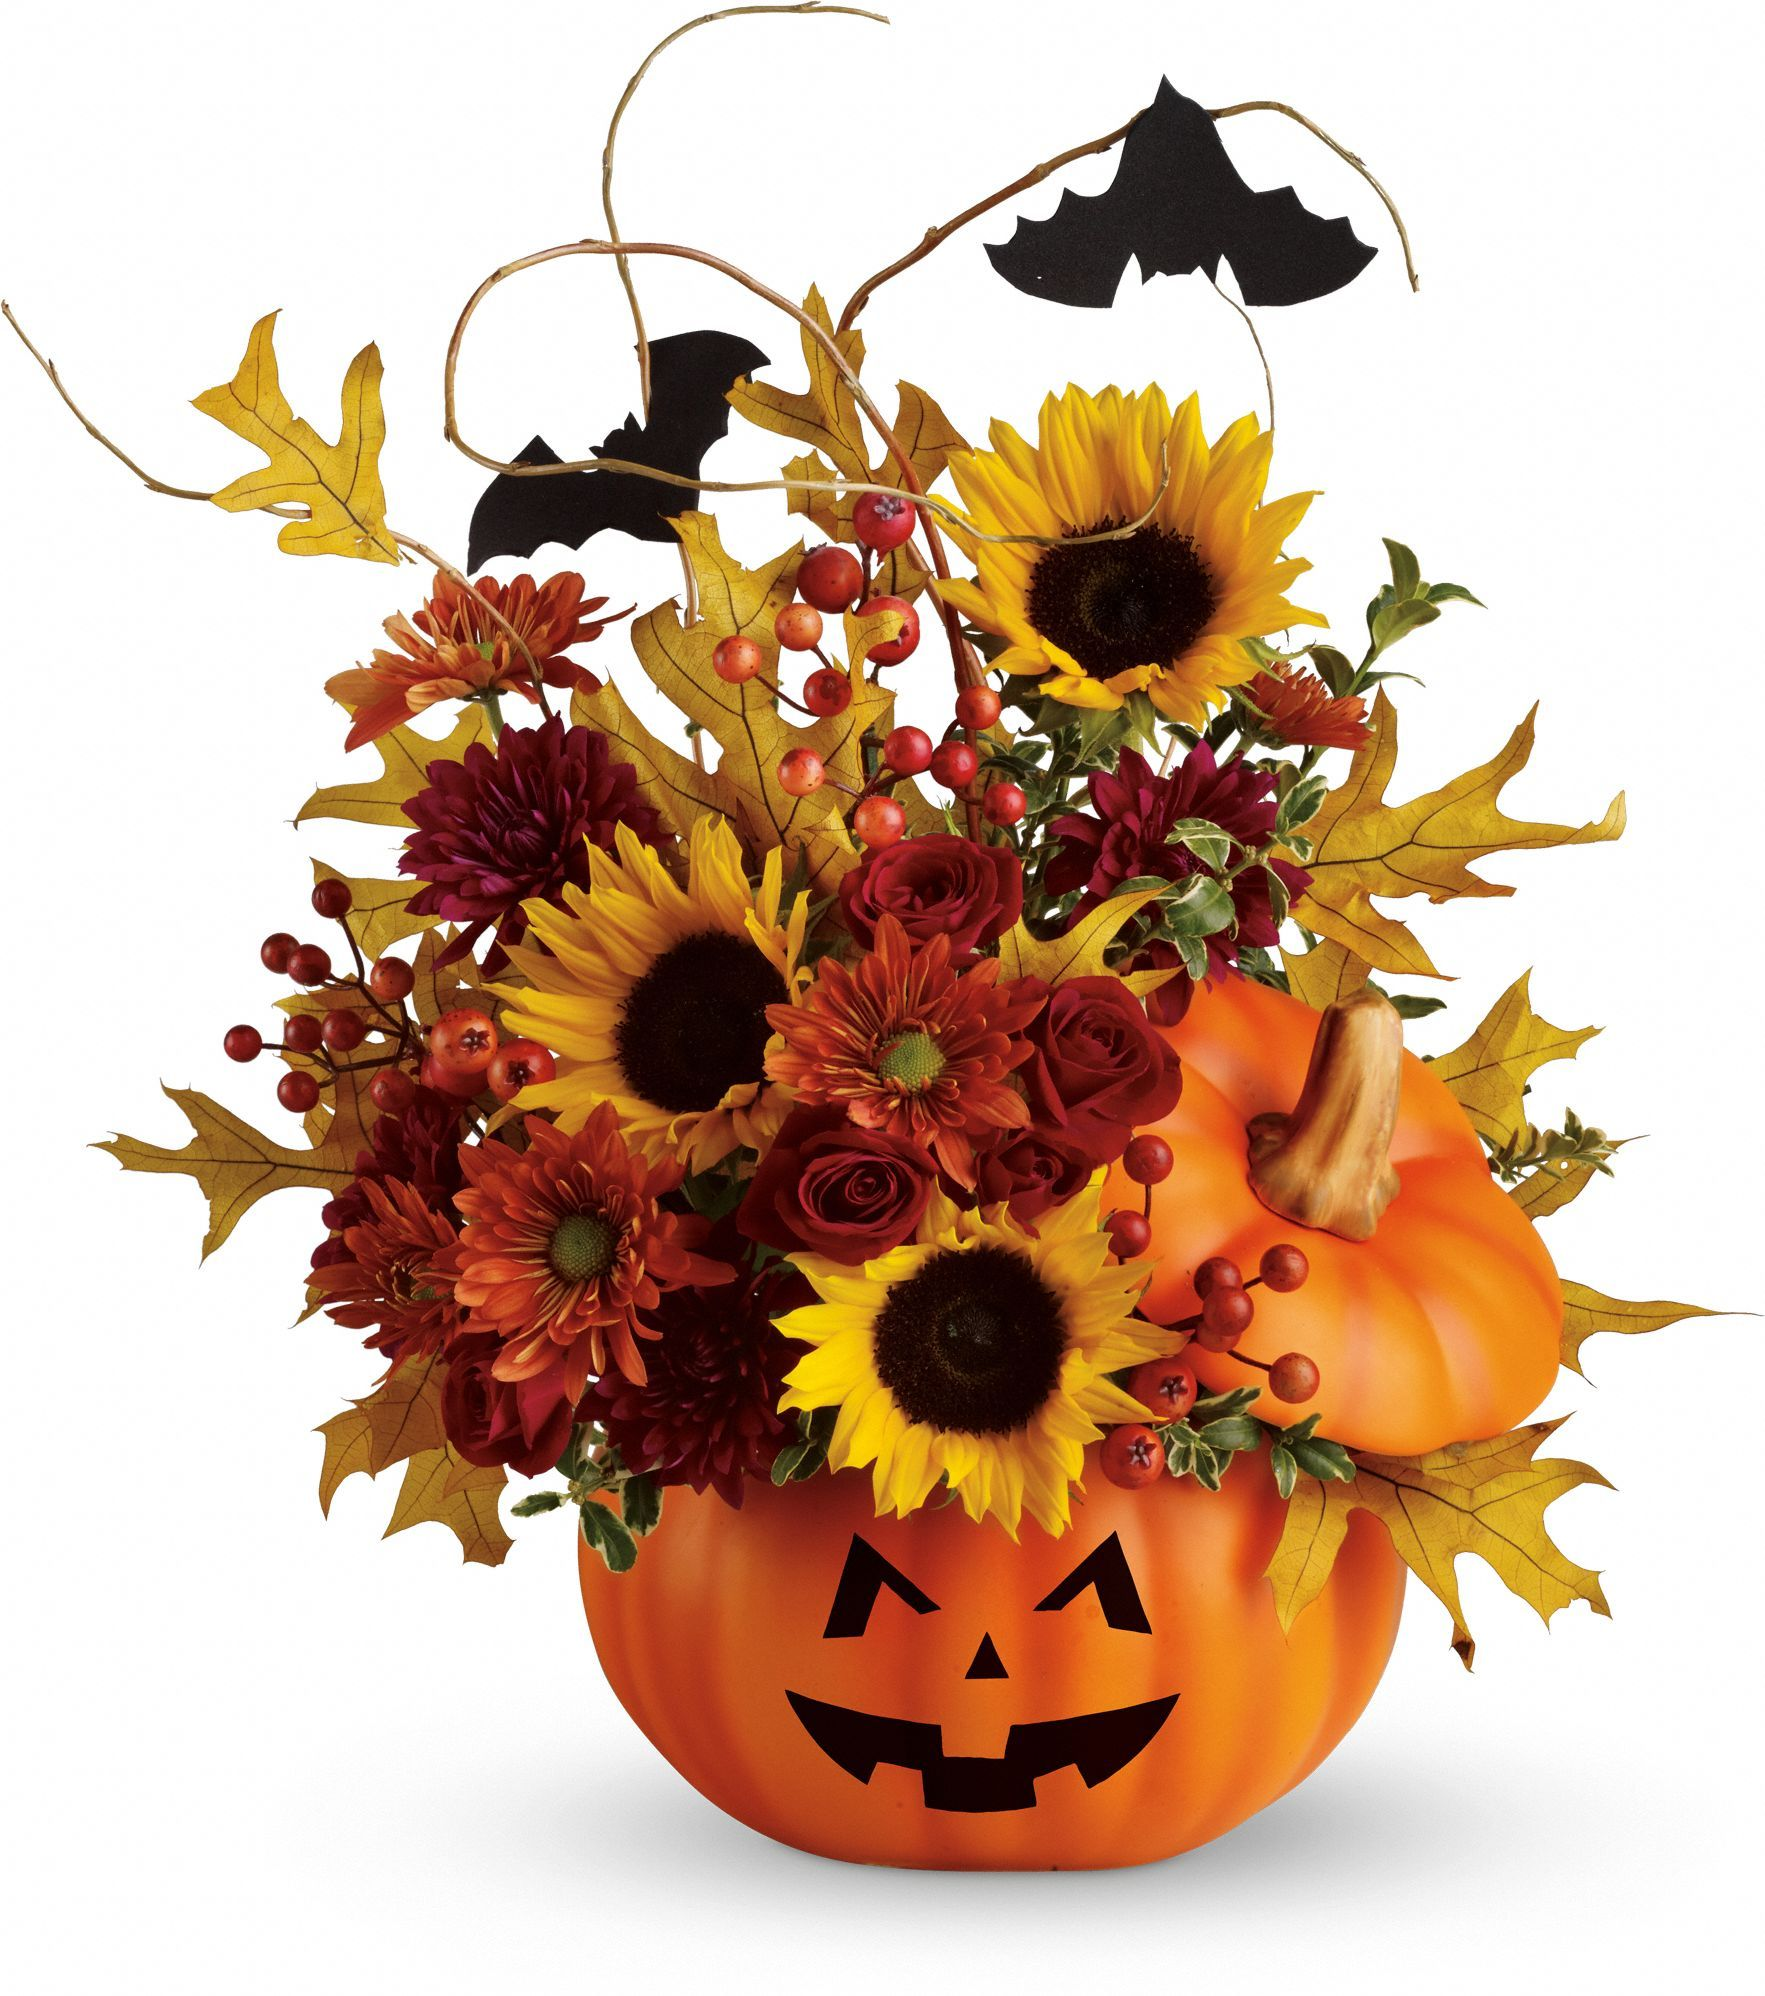 Teleflora\u0027s Trick  Treat Halloween Floral  Decorations - Whimsical Halloween Decorations